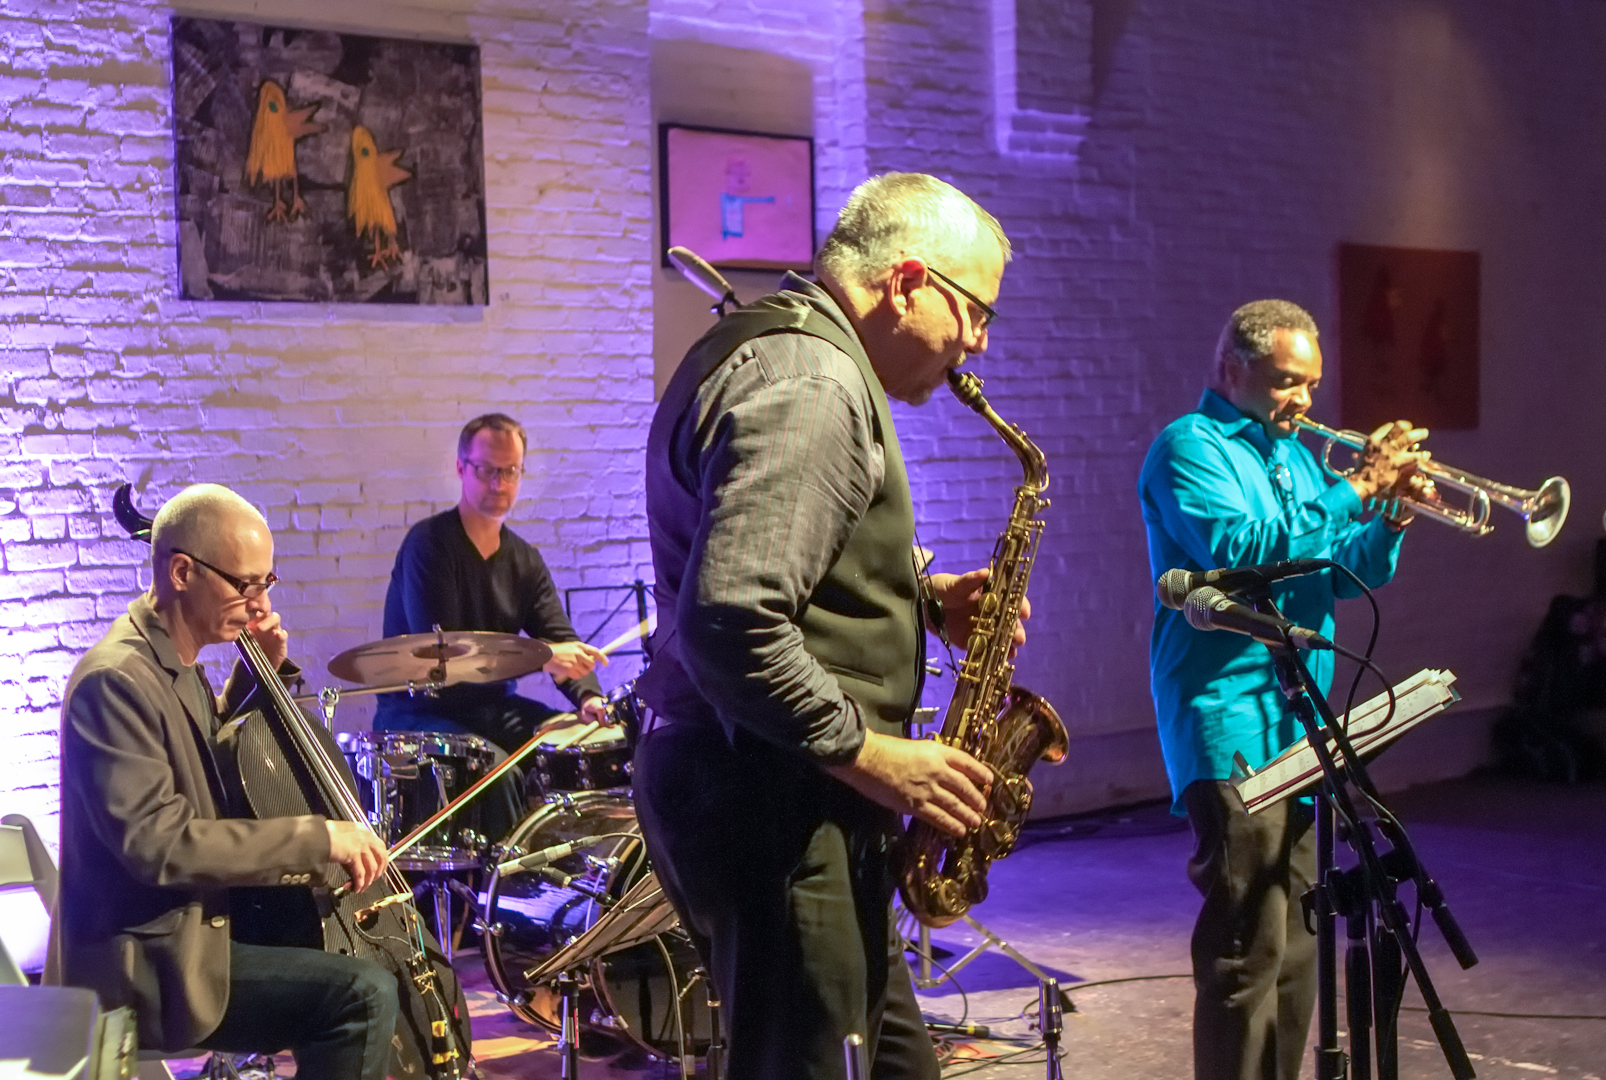 Marty Ehrlich, Erik Friedlander, Michael Sarin and James Zollar with Rites Quartet at Shapeshifter Lab